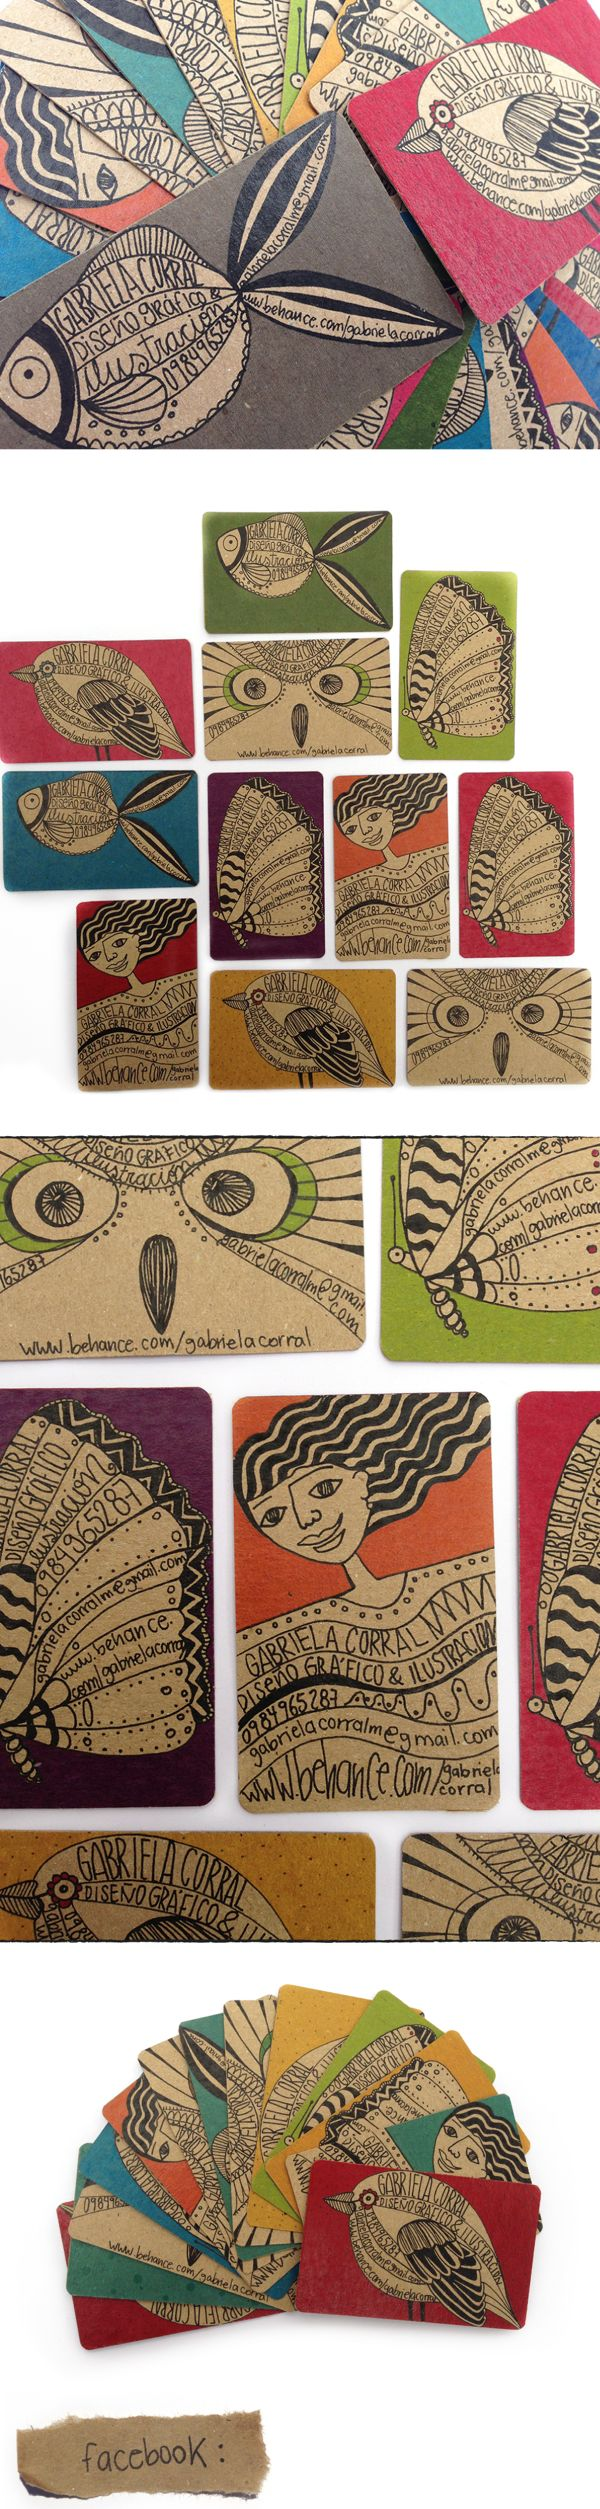 Tarjetas personales 1.2 by Gabriela Corral, via Behance